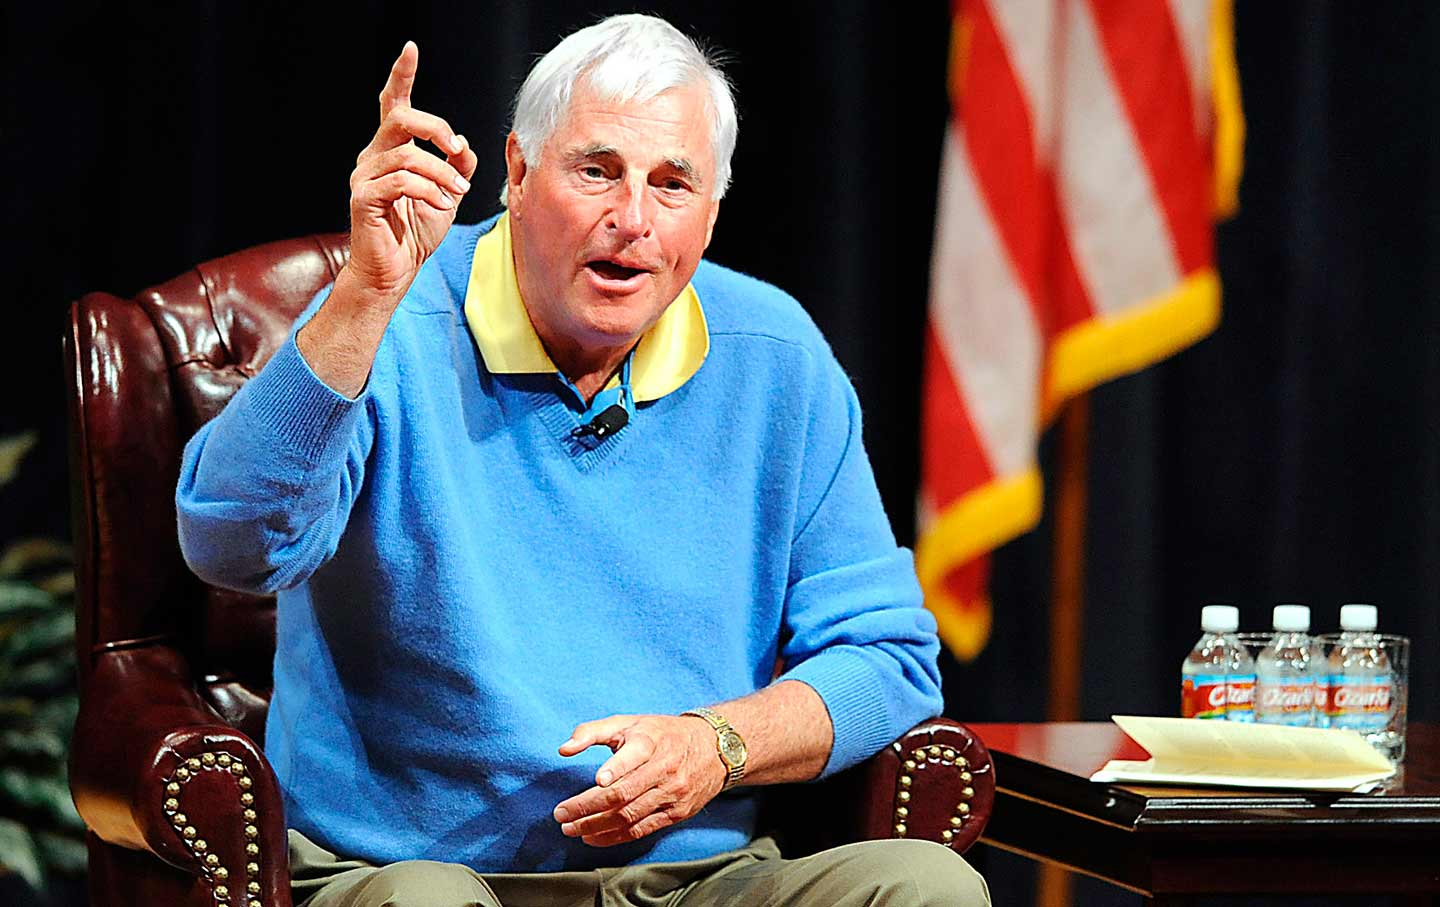 Bob Knight Saying Something Bad